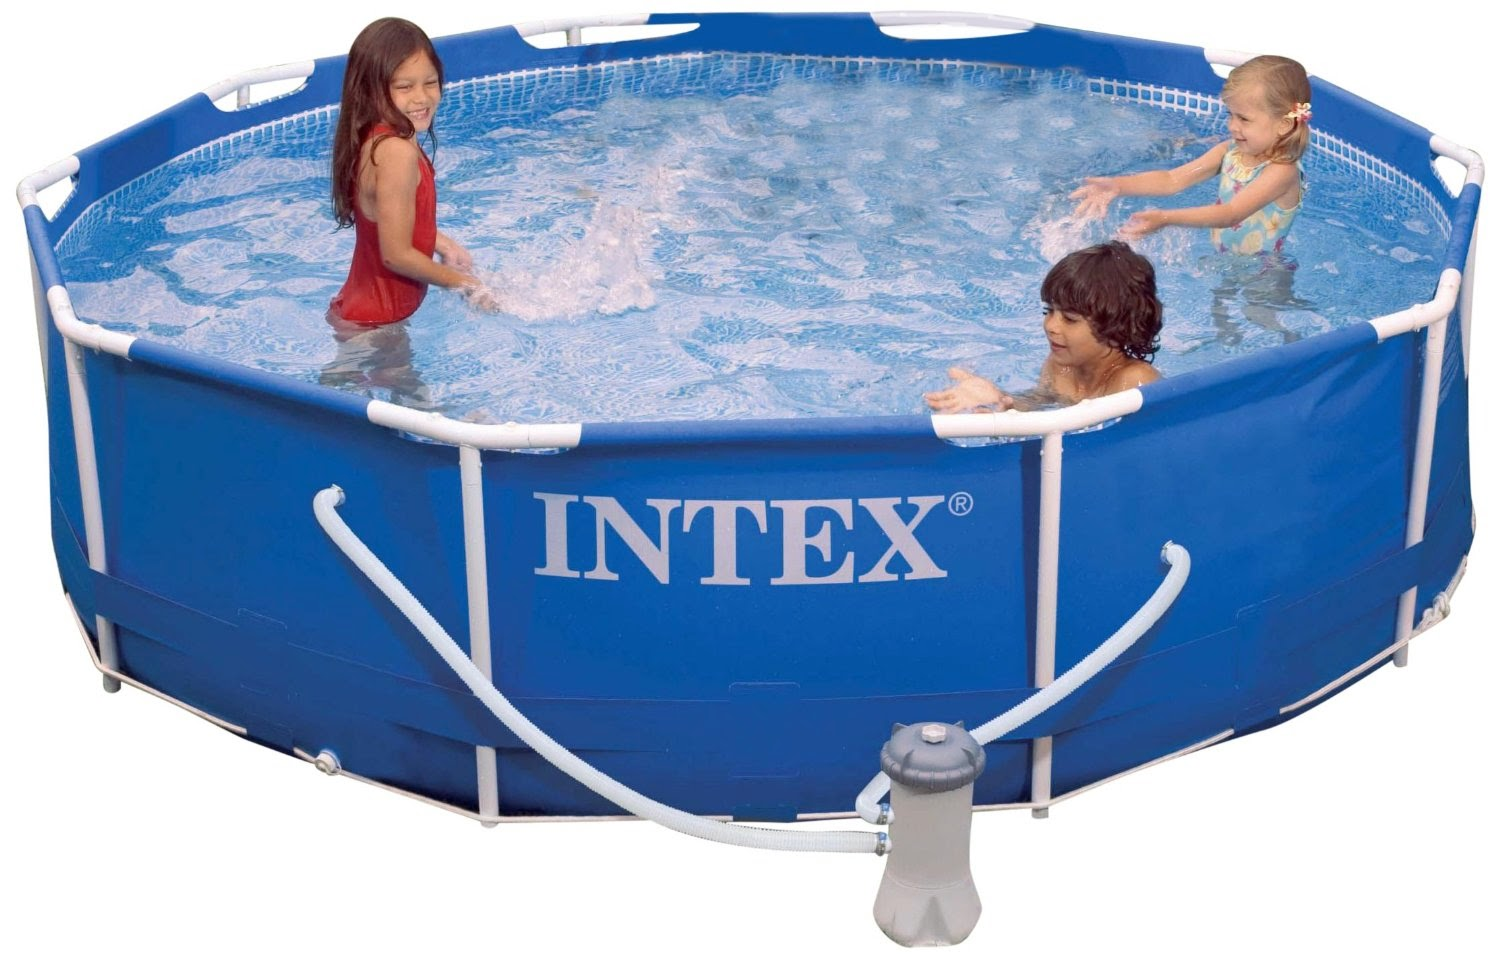 best seller intex pools reviews intex pools walmart. Black Bedroom Furniture Sets. Home Design Ideas